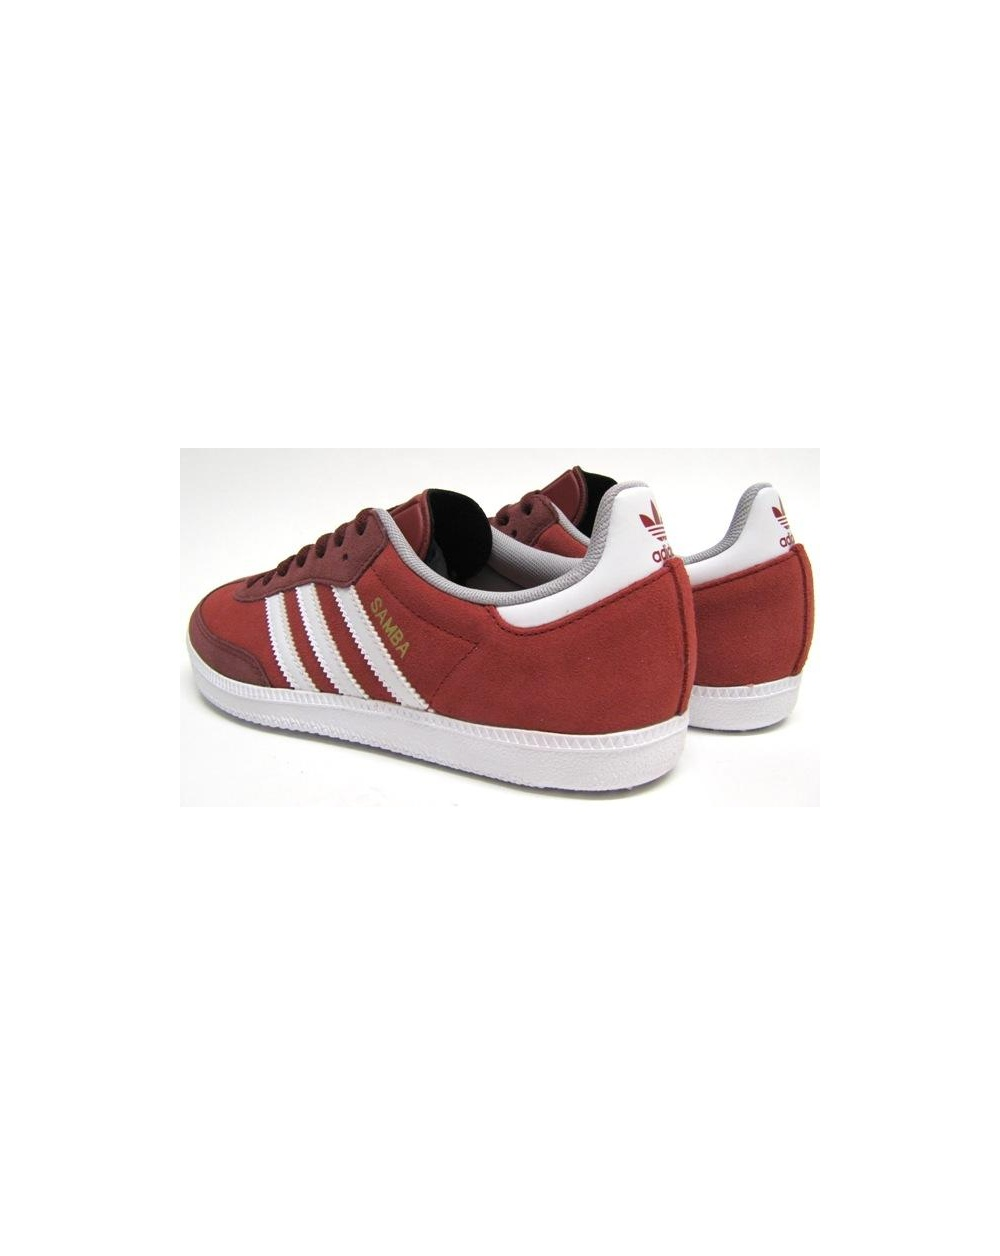 adidas samba red suede on sale   OFF61% Discounted 1e629b954